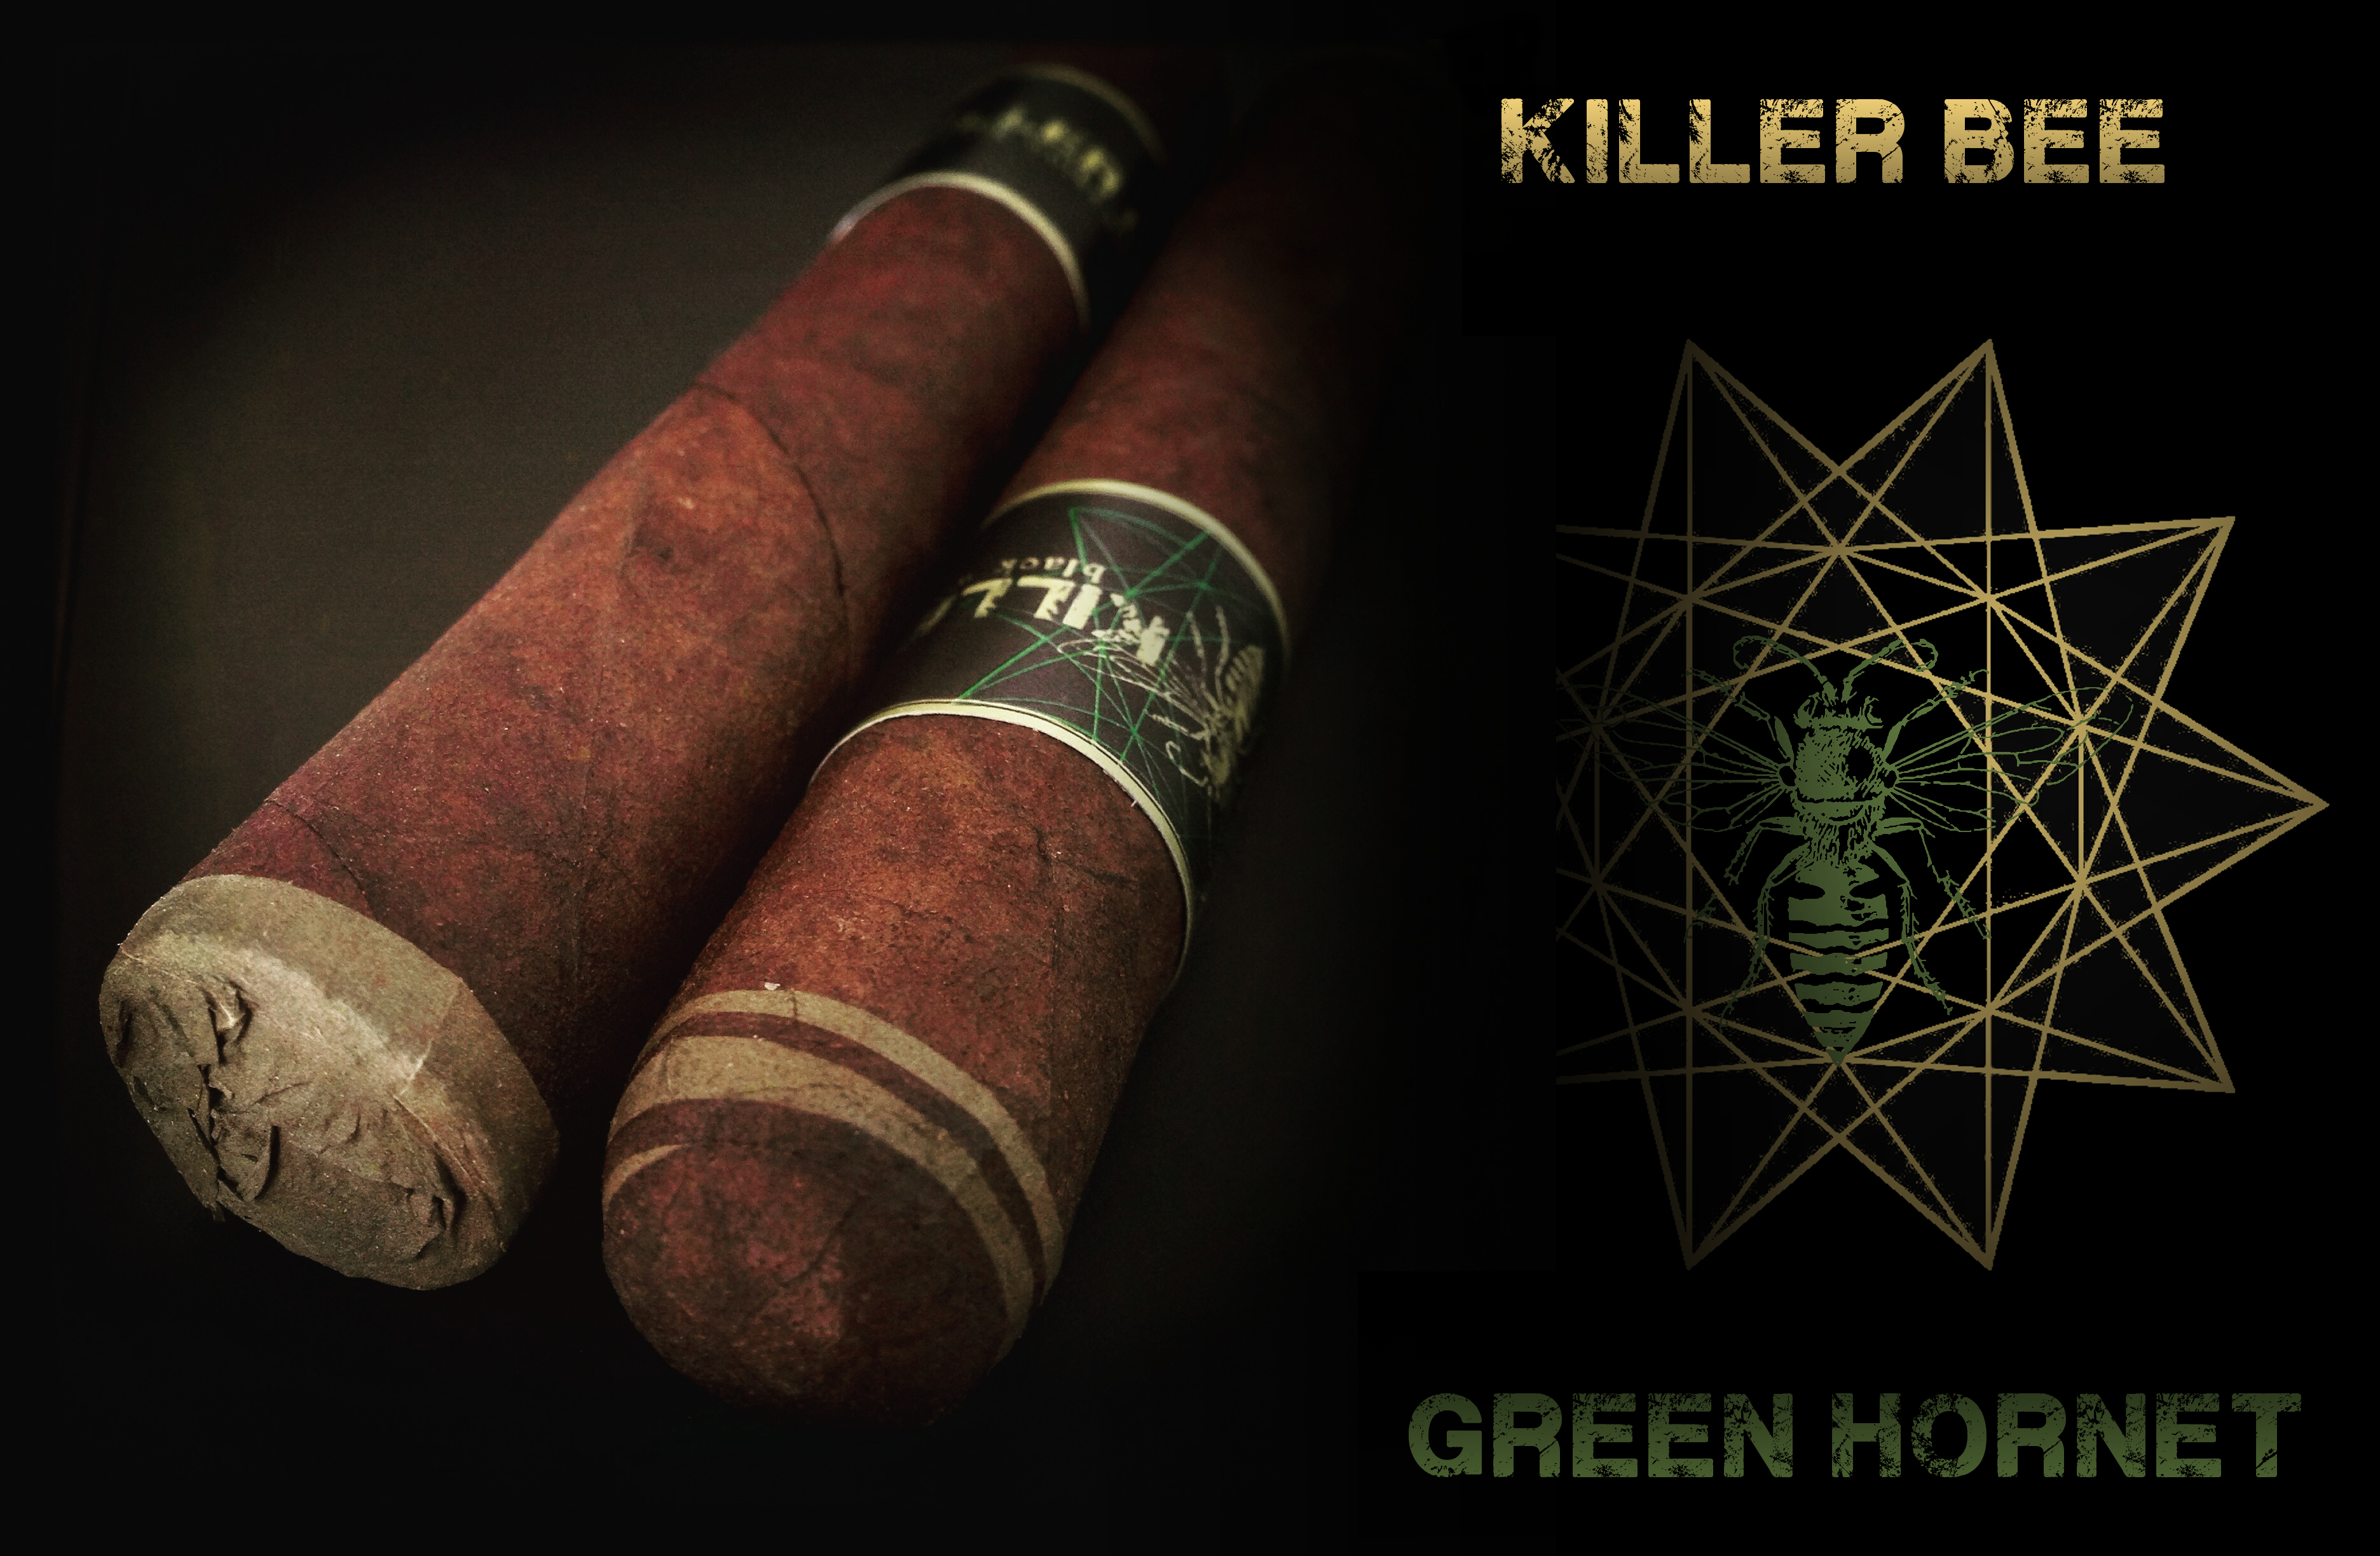 Cigar News: Black Works Studio Killer Bee Green Hornet to Debut at the 2016 IPCPR Trade Show